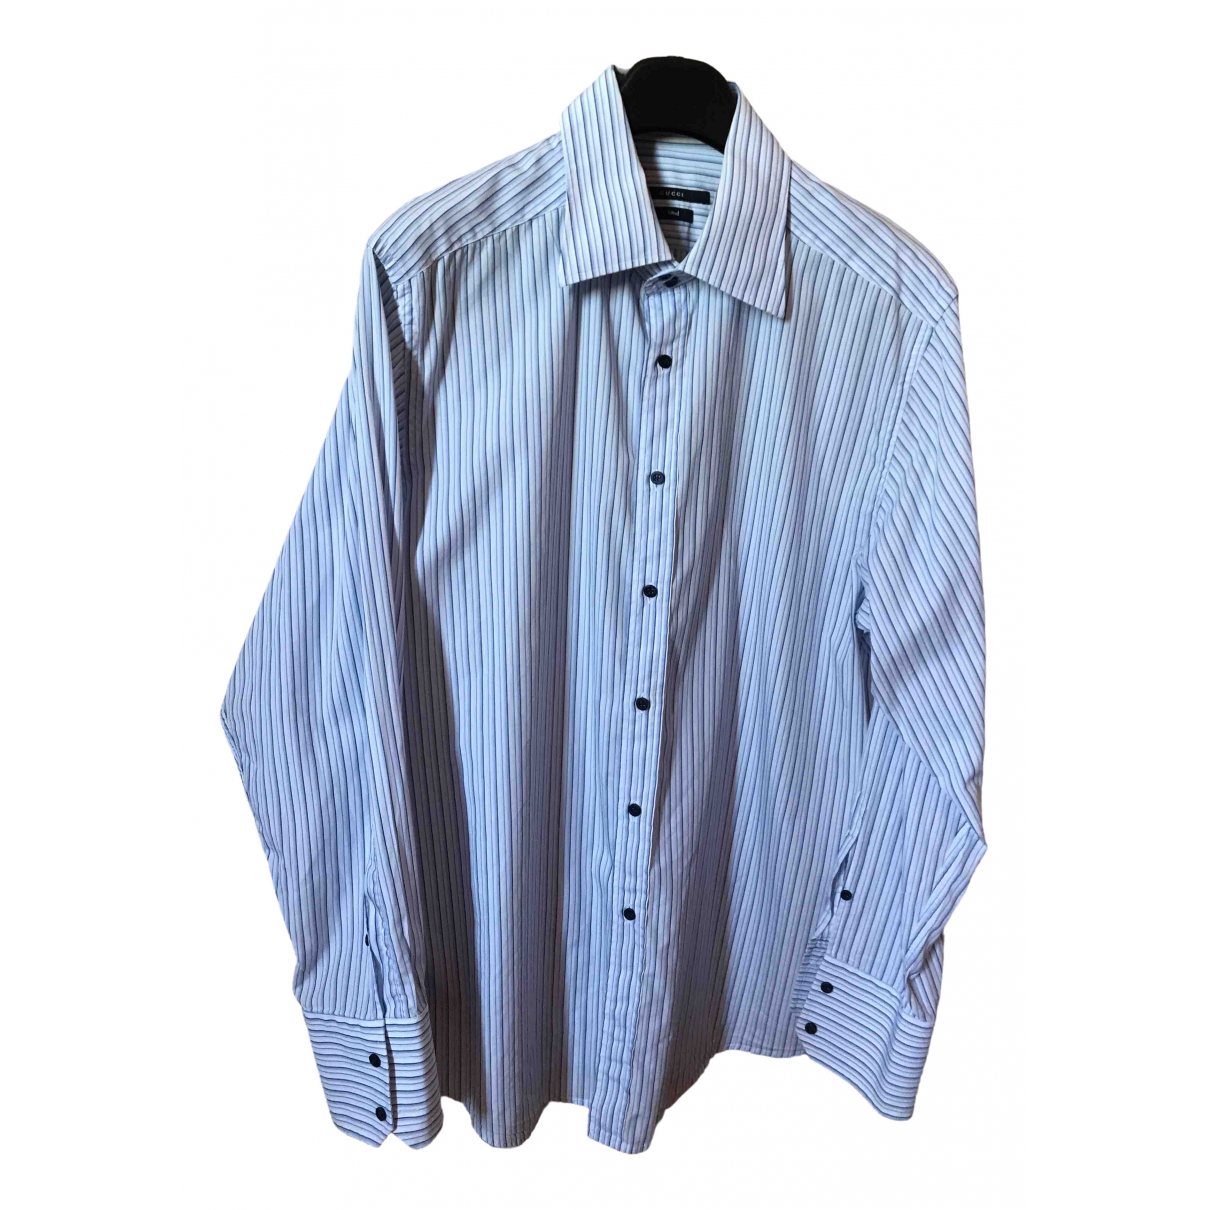 Gucci \N Multicolour Cotton Shirts for Men 17.5 UK - US (tour de cou / collar)